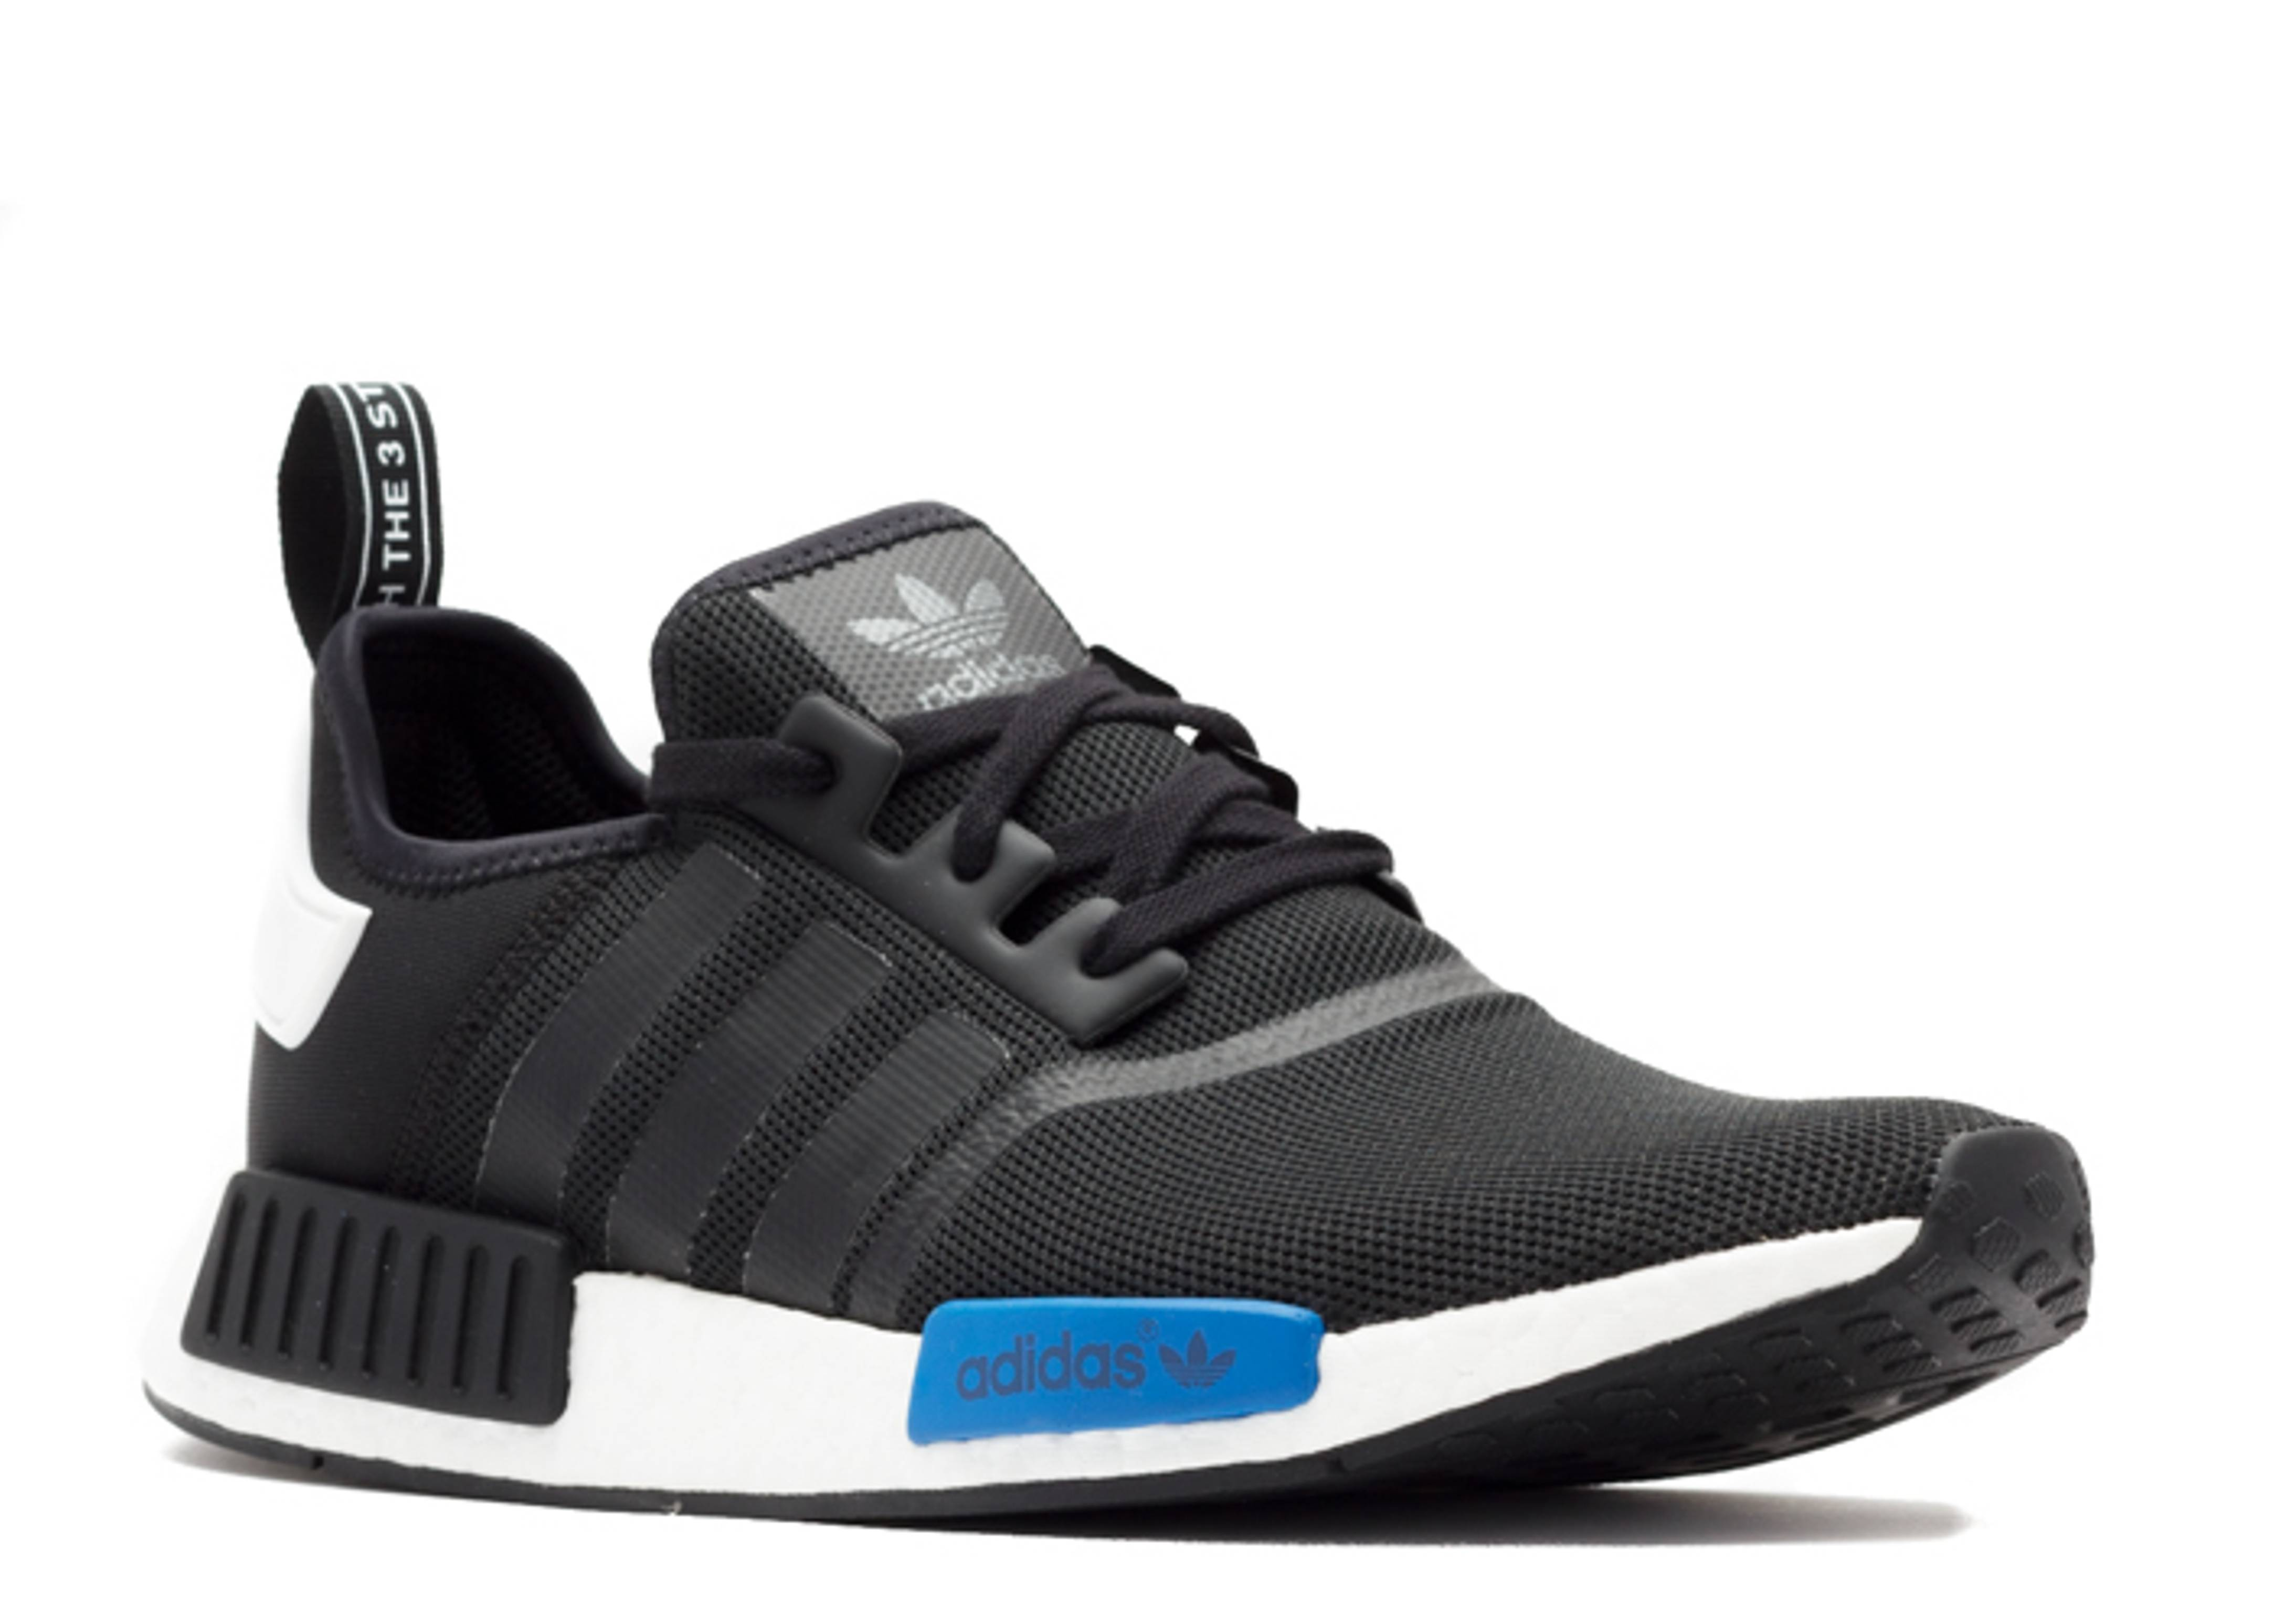 Adidas Nmd Runner Blue